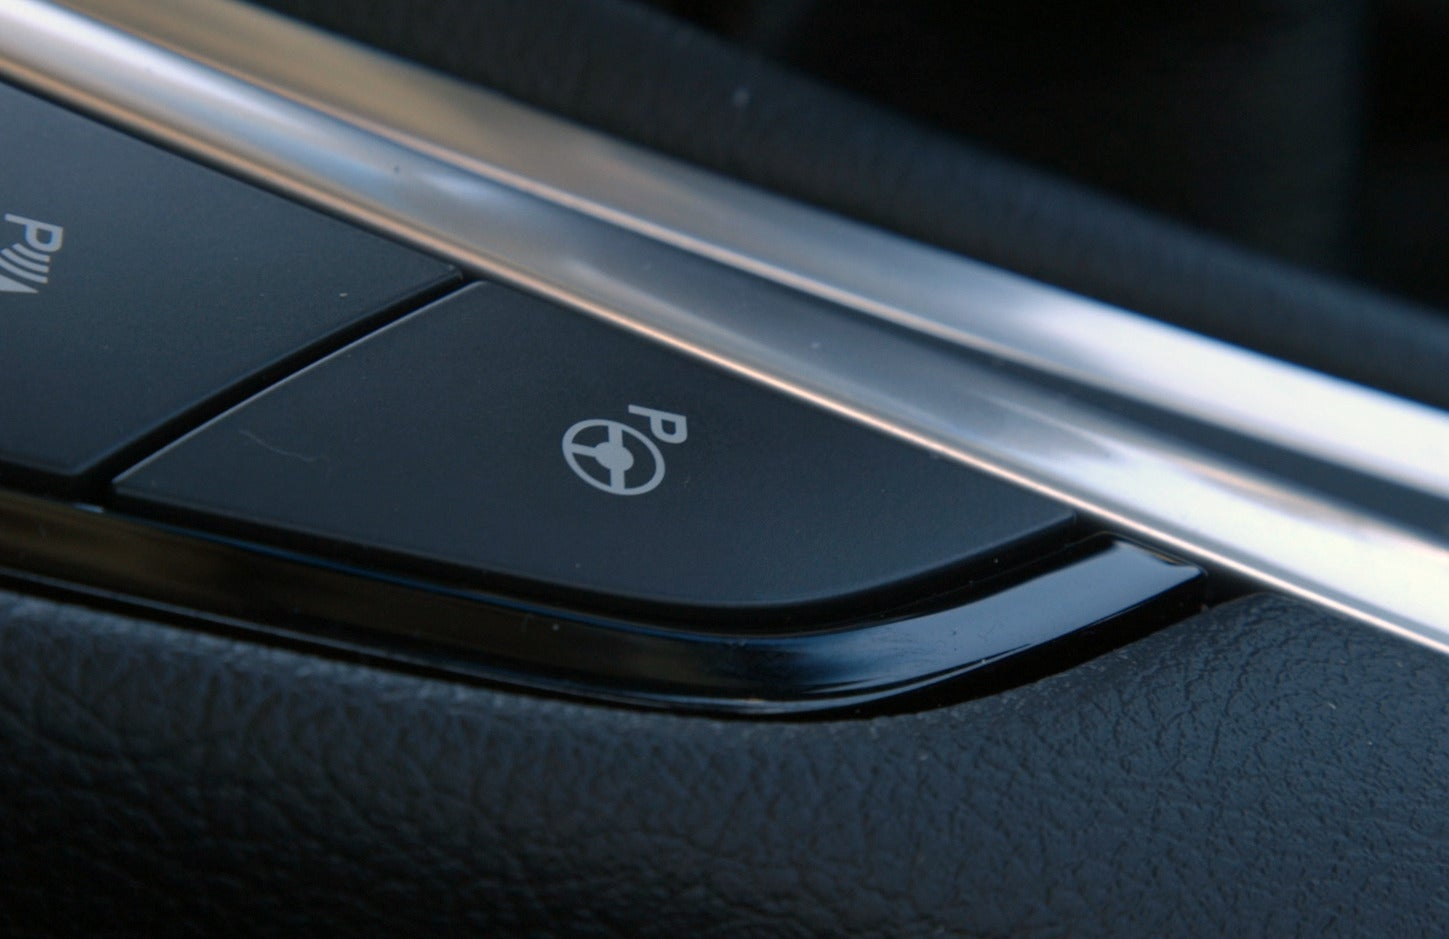 Ford Edge Parking Button Press The Parking Assist Button Twice To Tell The System You Want To Park Perpendicularly